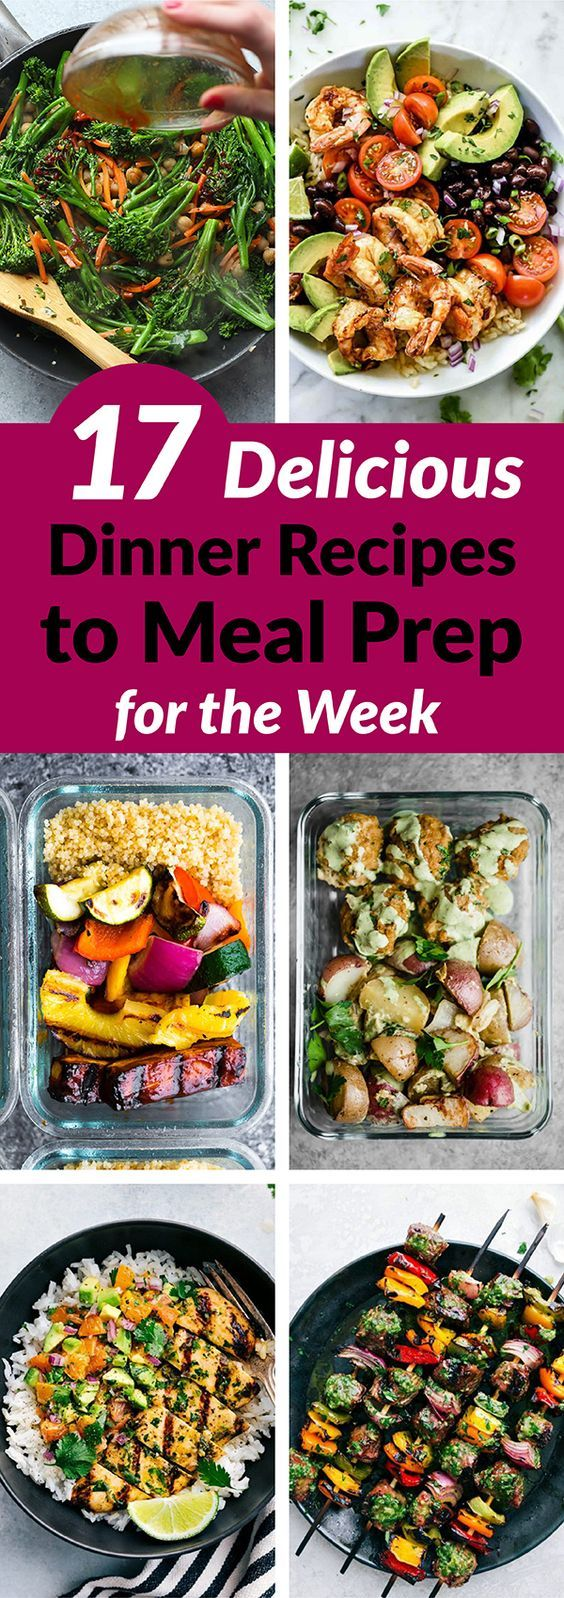 100+ Meal Prep Recipes for the week images